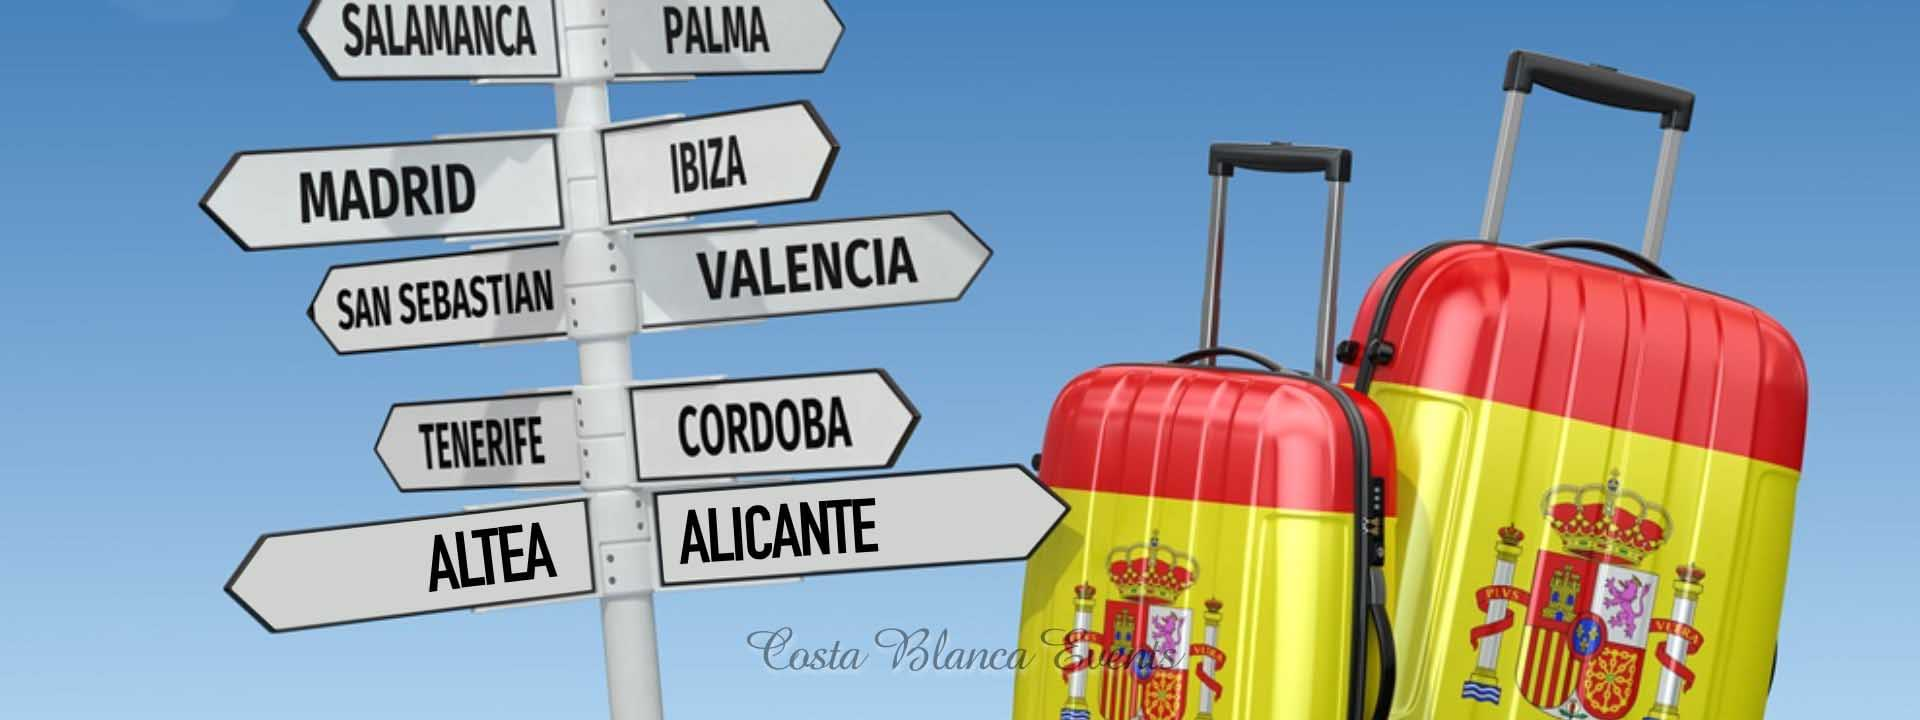 Travel and accommodations for your dream wedding in Spain